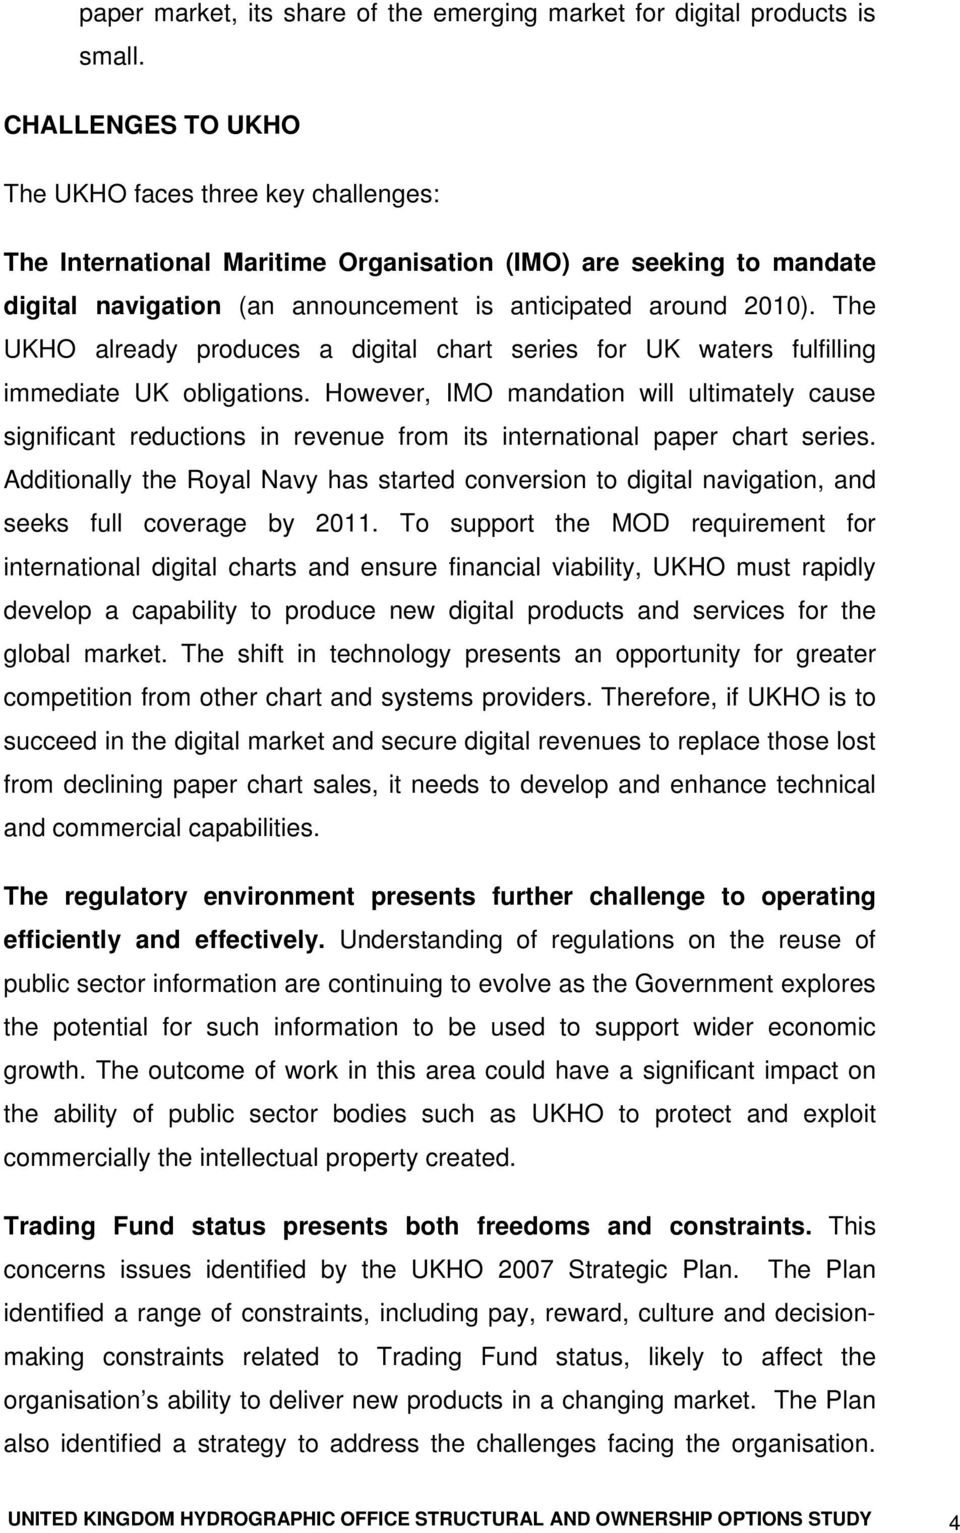 The UKHO already produces a digital chart series for UK waters fulfilling immediate UK obligations.